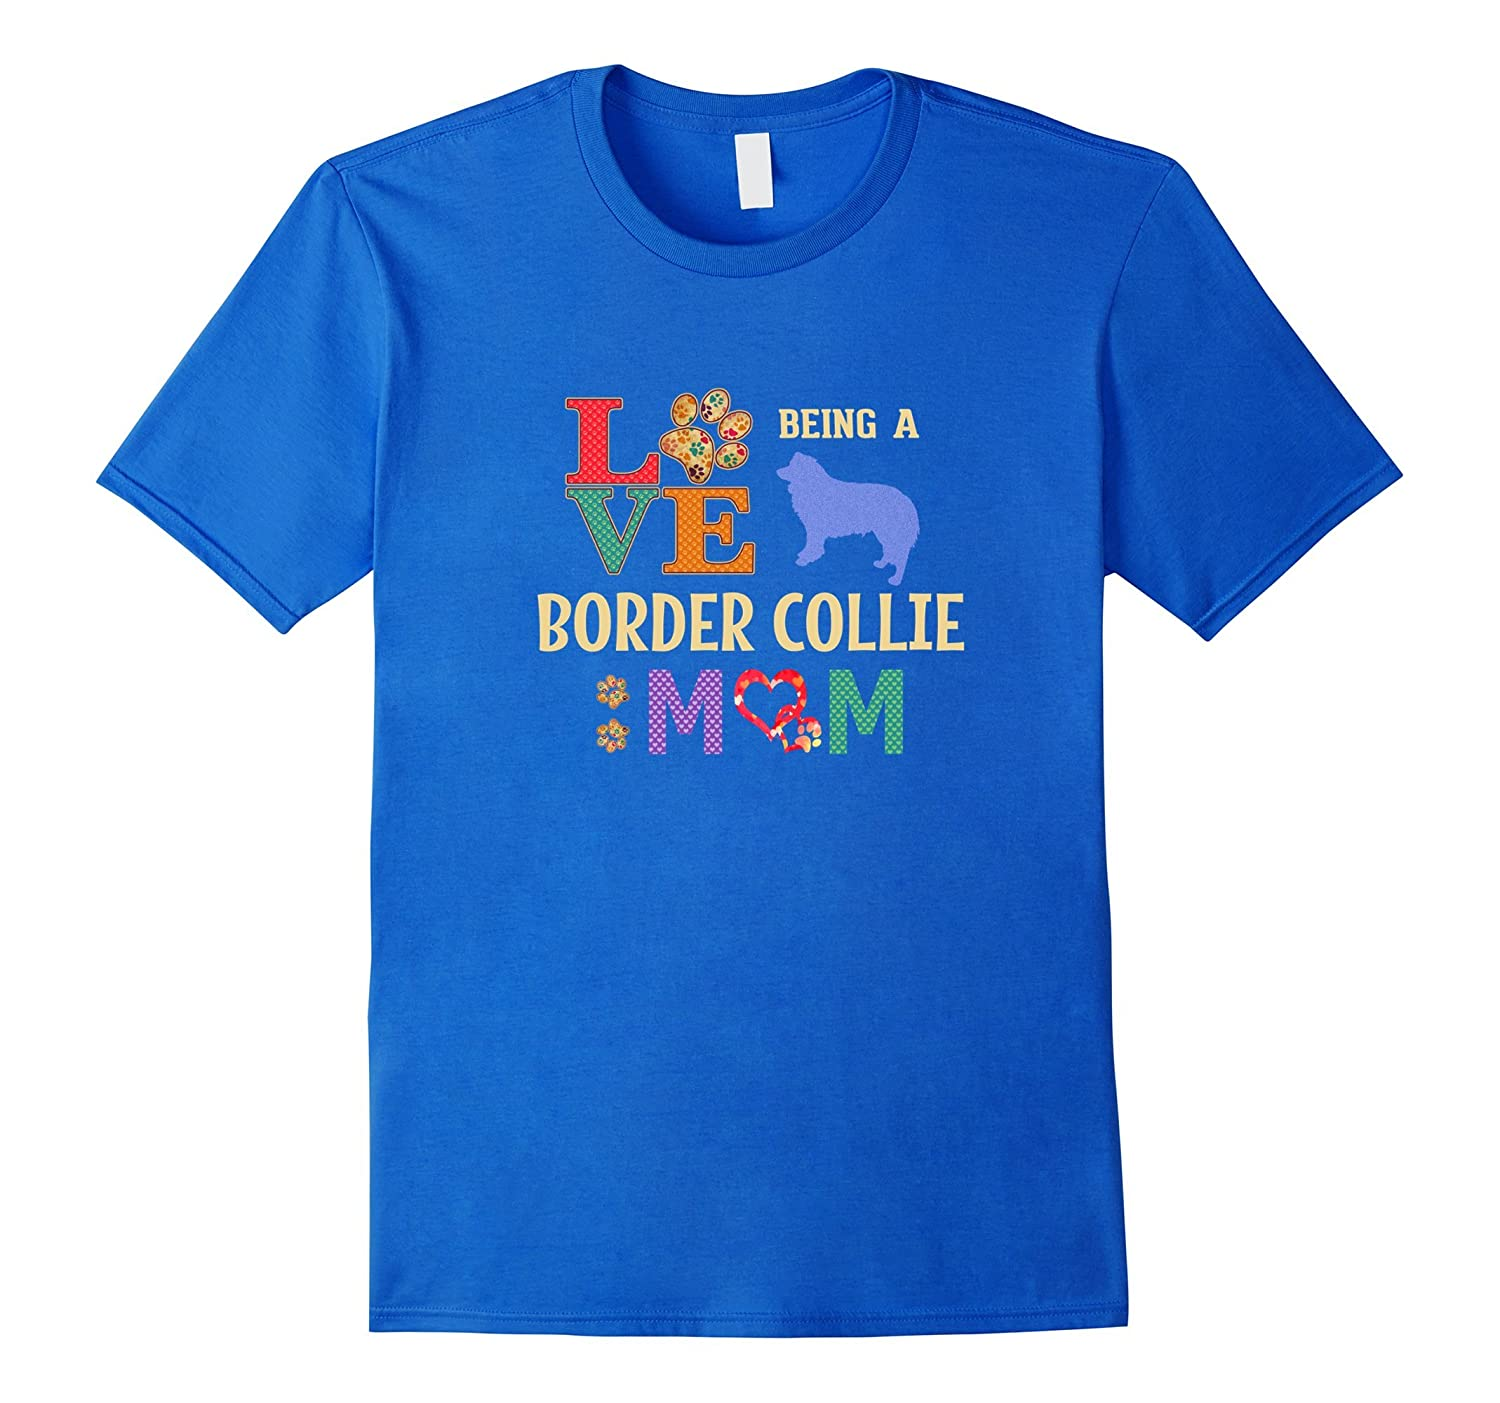 Best Border Collie Shirt for a Border Collie Mom